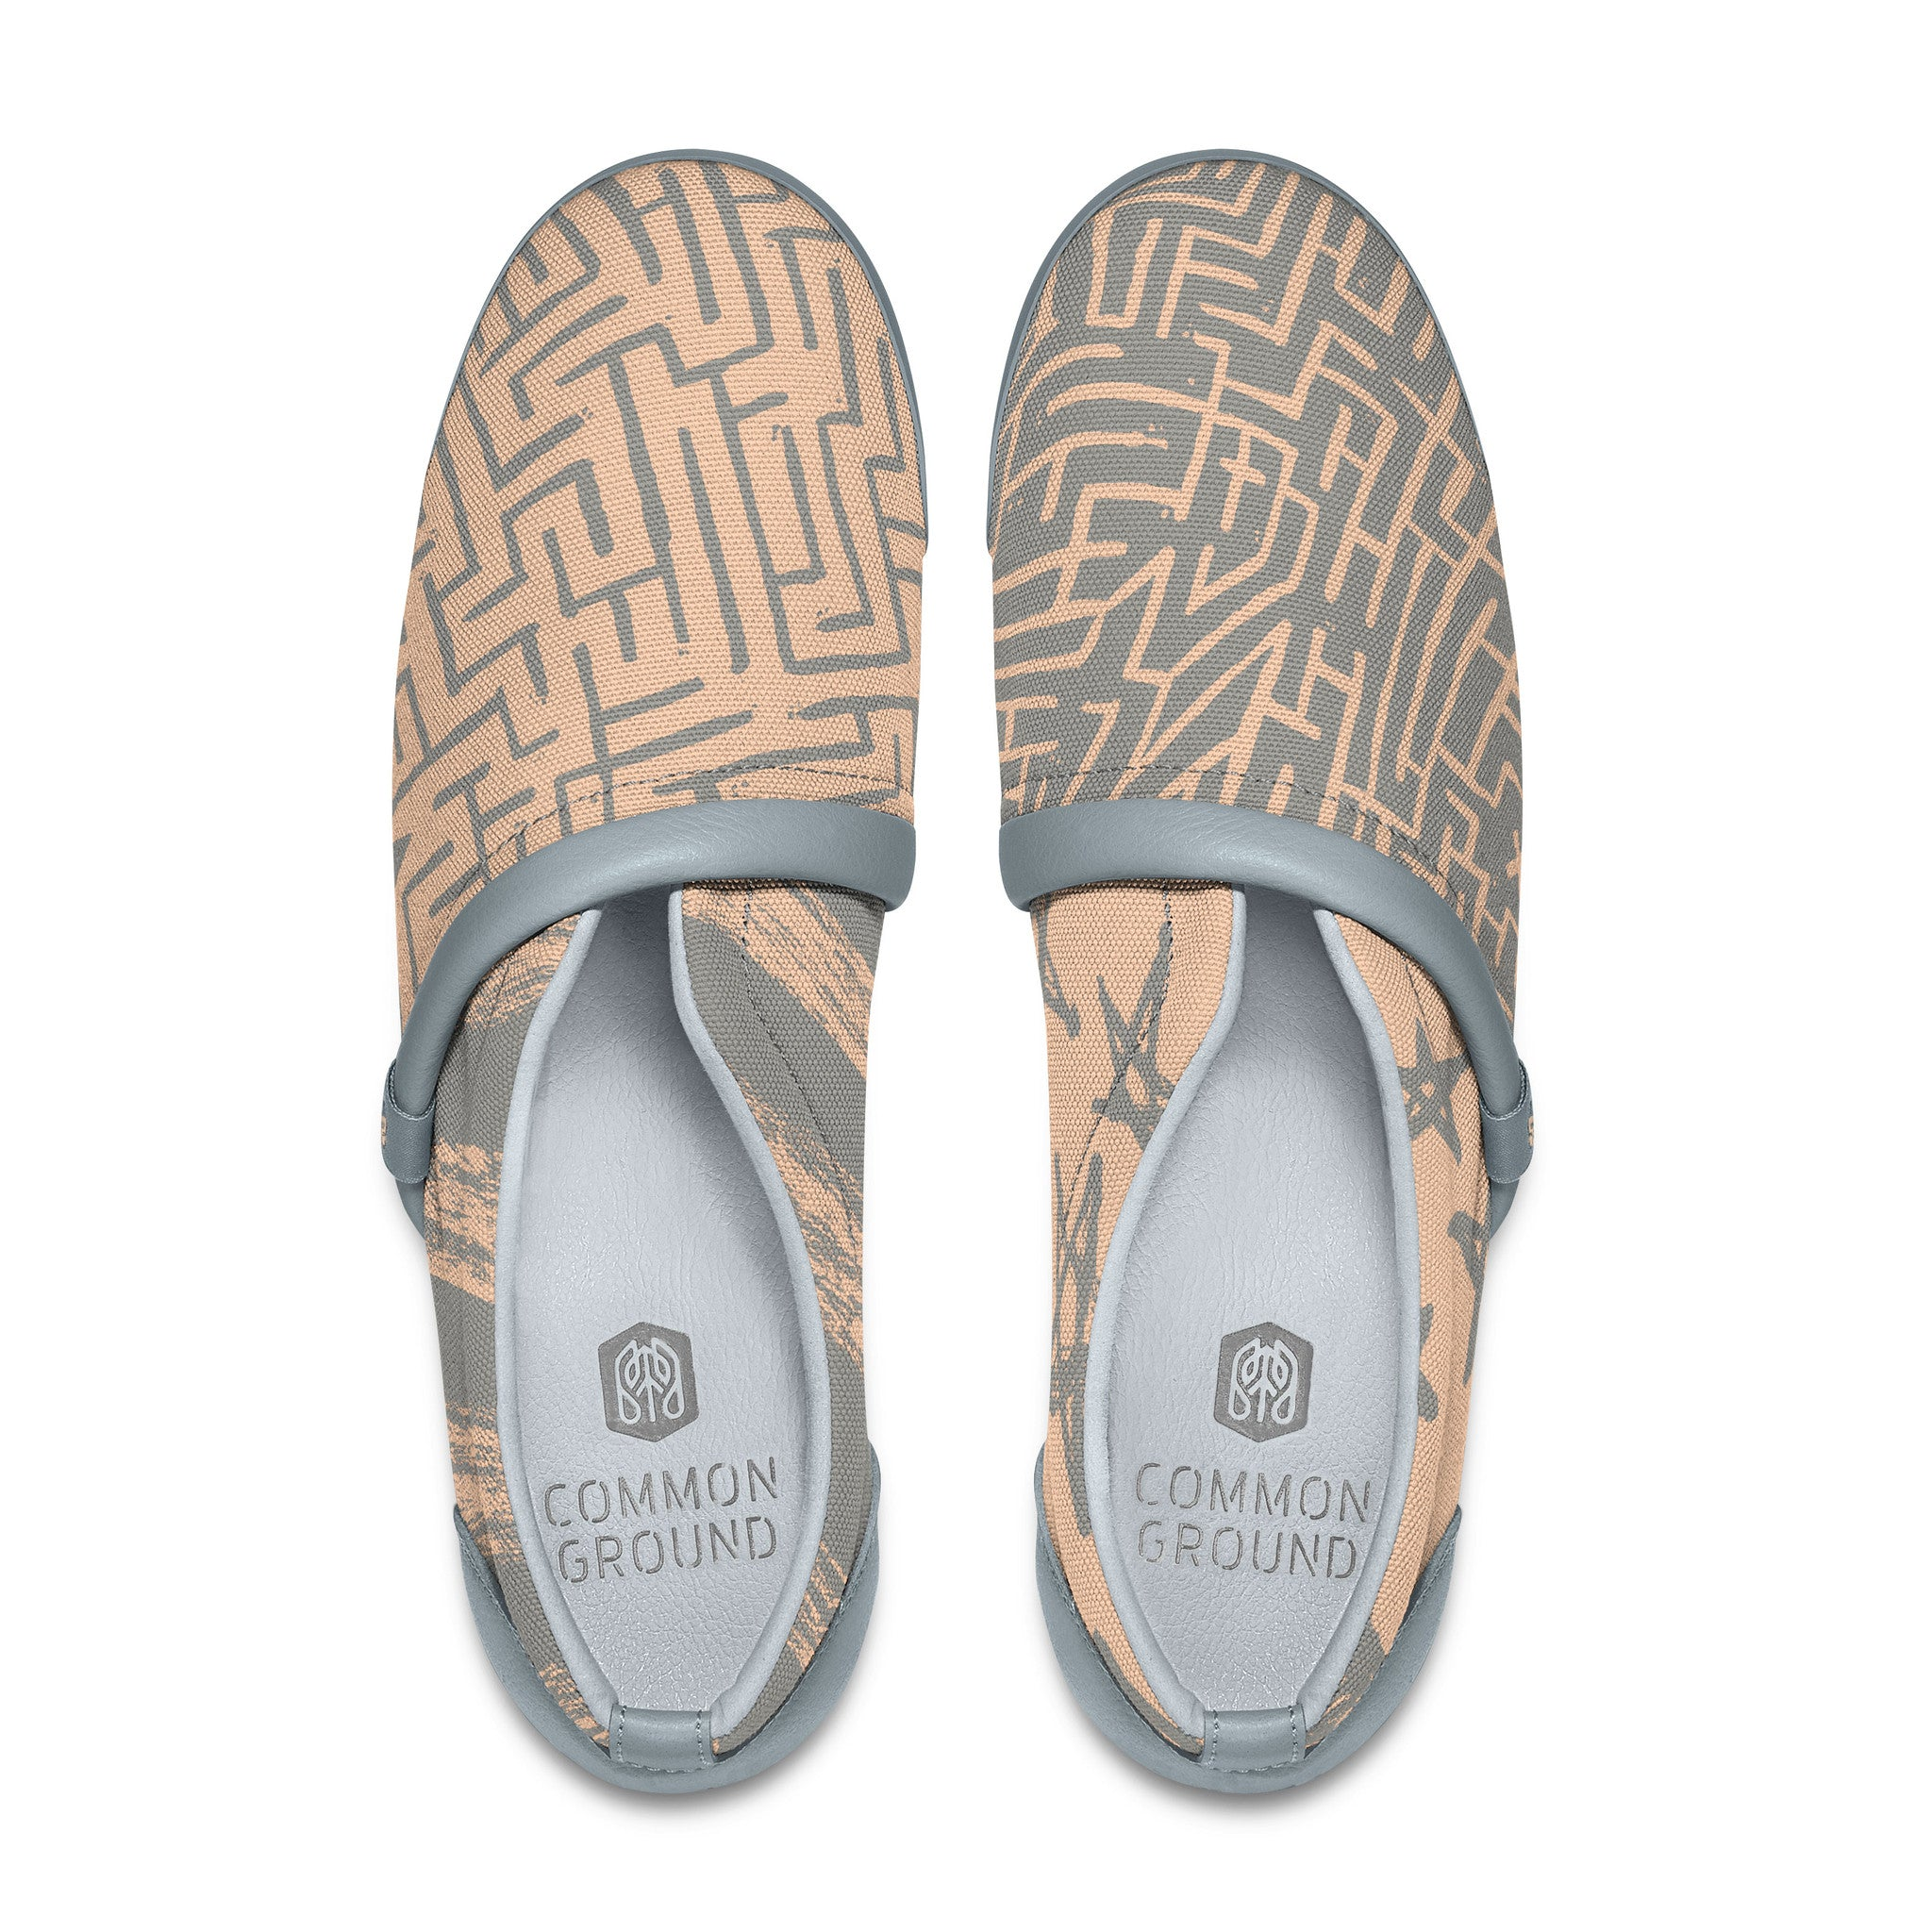 Bleached_Apricot - Common Ground Footwear Shoes Top View